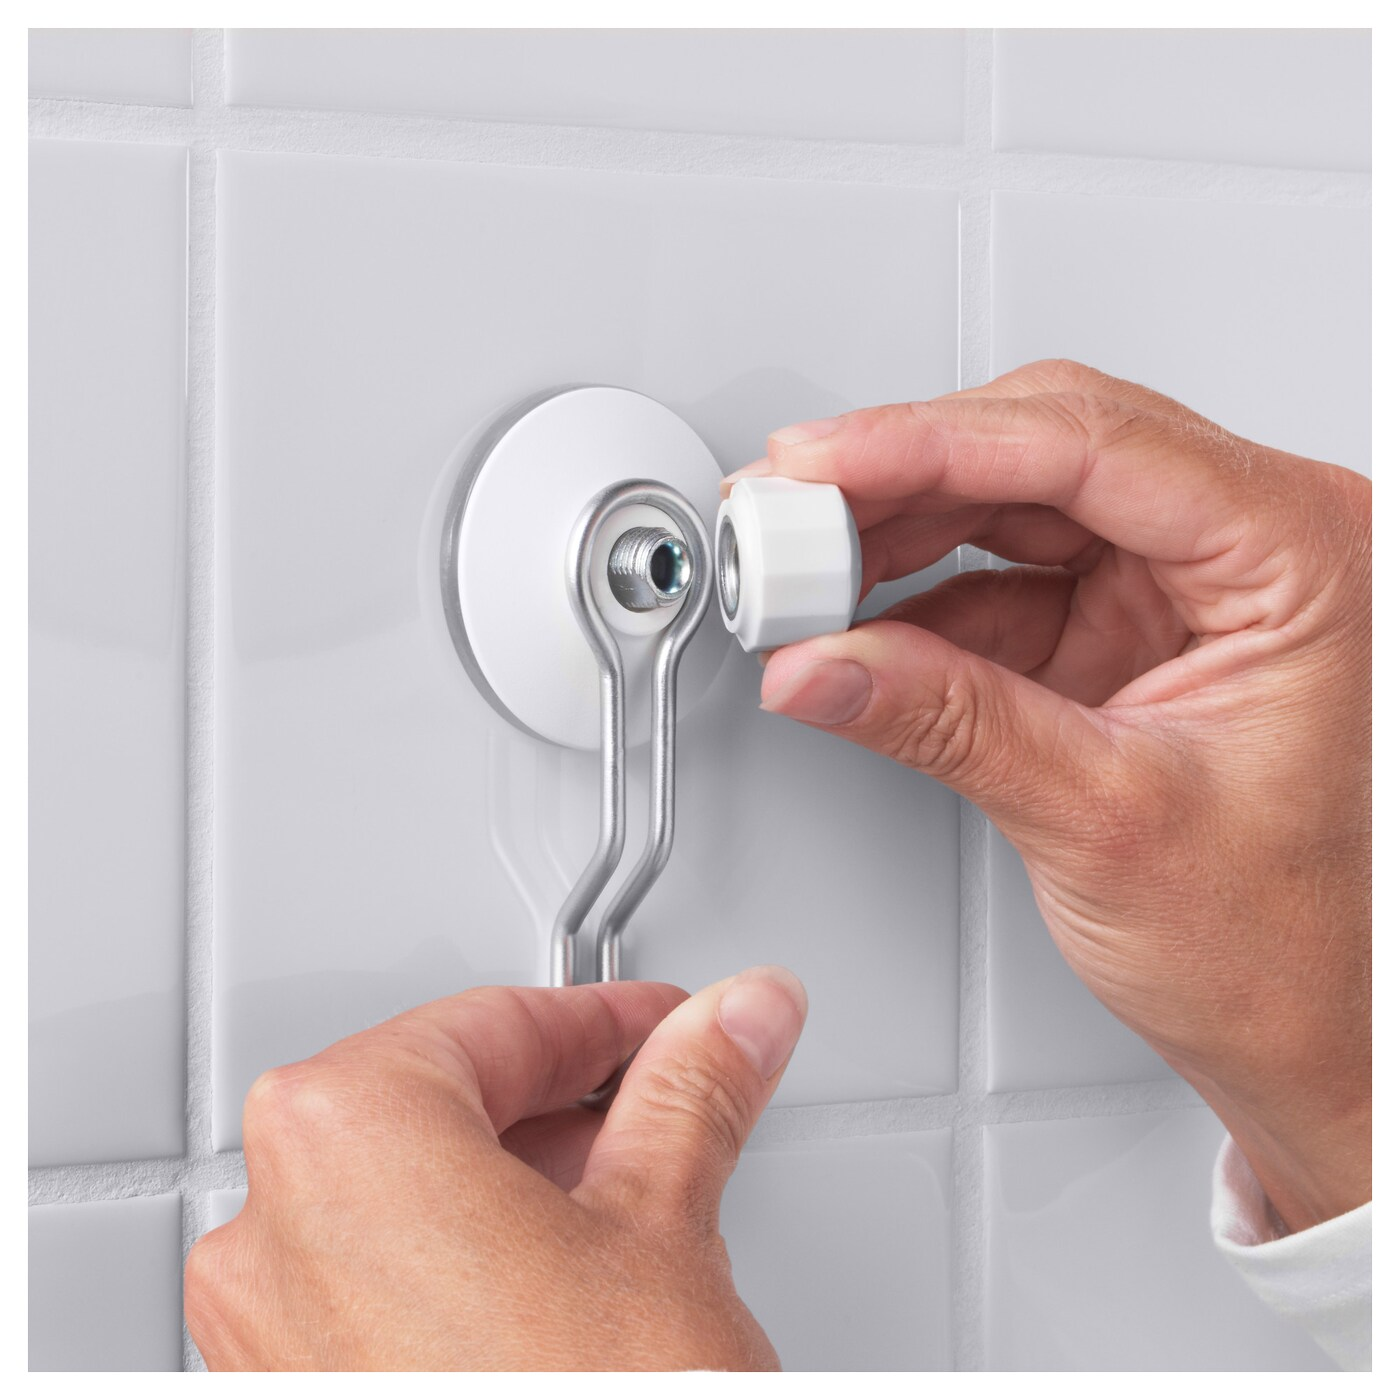 IKEA IMMELN hook With suction cups that grip smooth surfaces such as glass, mirrors and tiles.